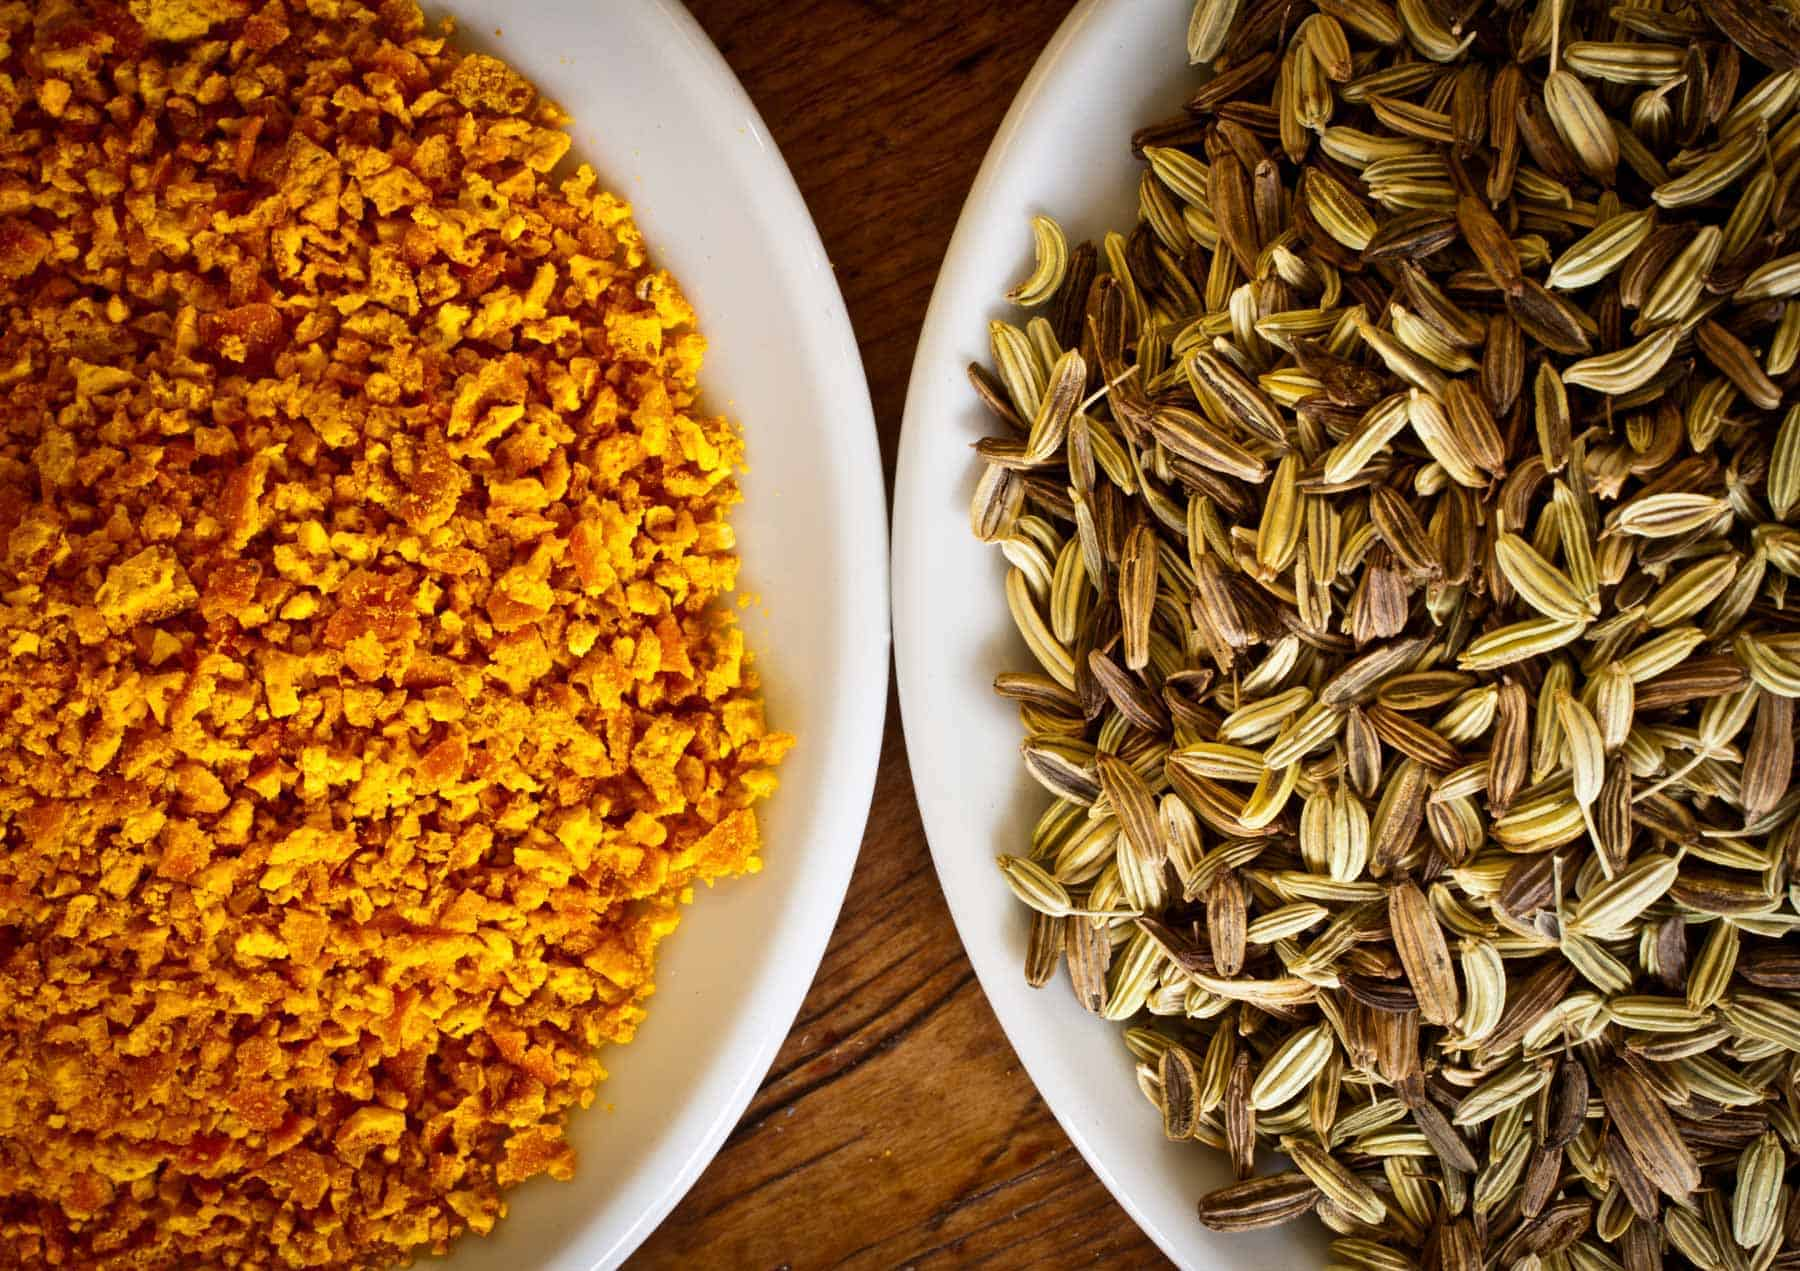 Orange and fennel seeds on two plates. The difference between WordPress.com and WordPress.org.